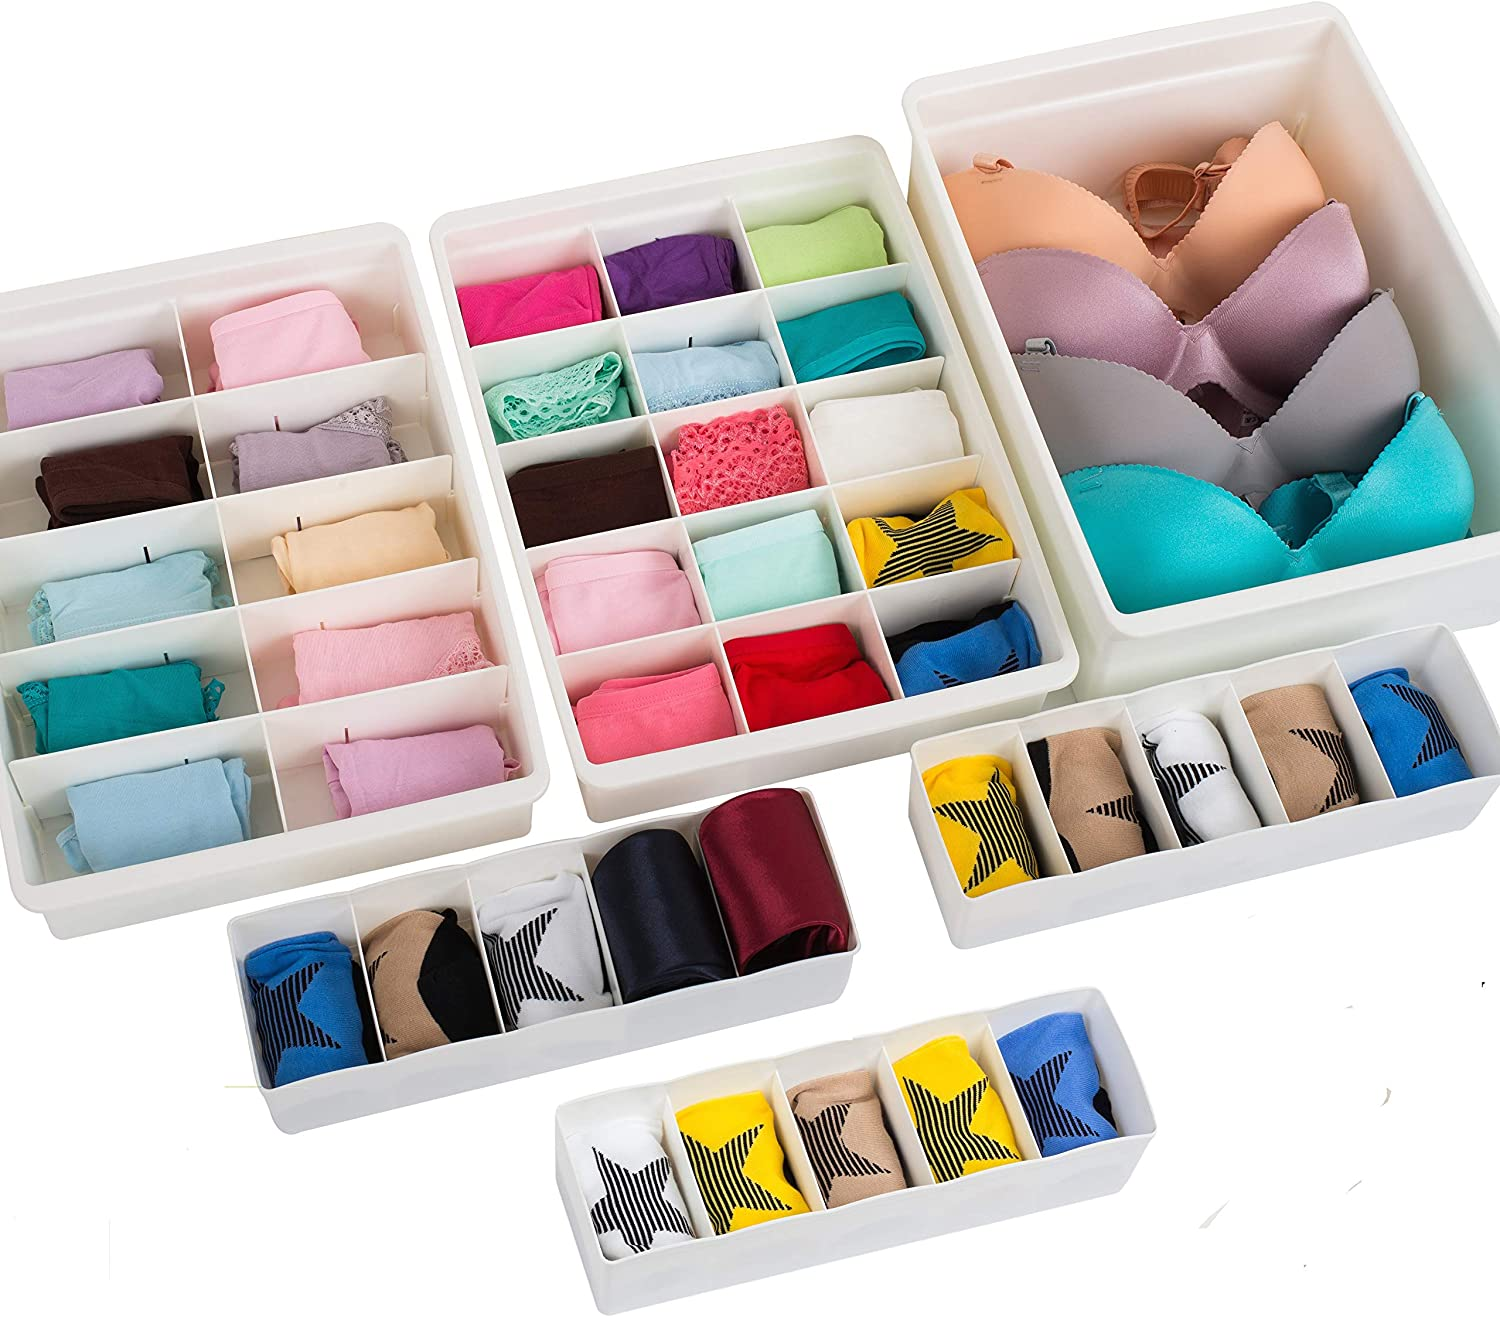 24x Drawers Divider Drawer Onesie-Order System Compartment 0.69 €//1st